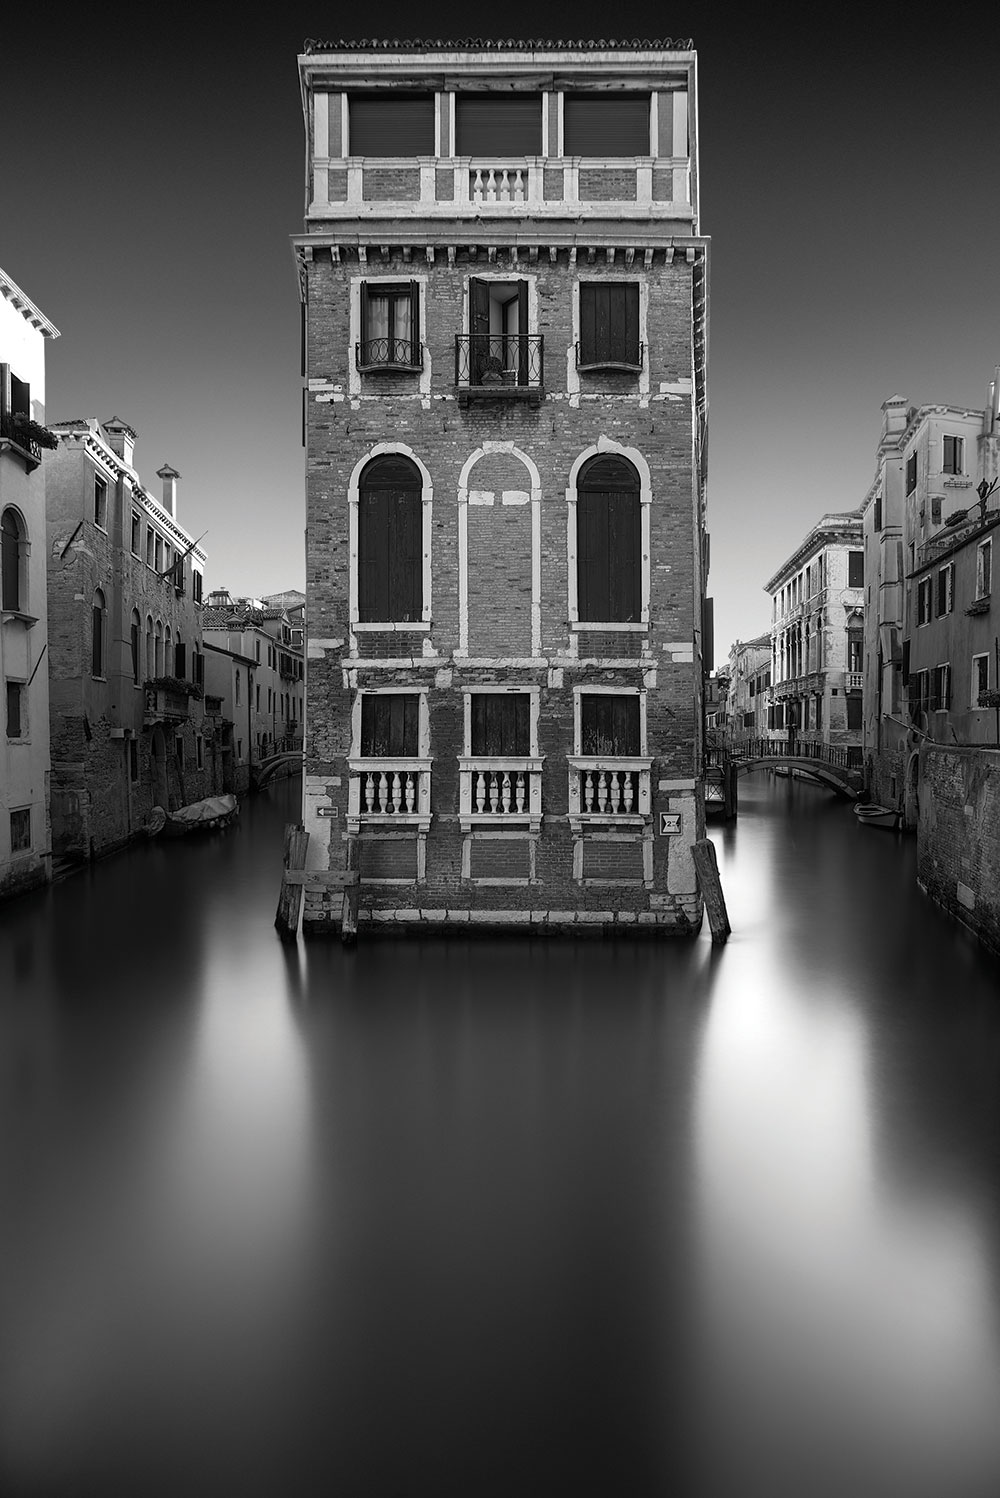 Monochrome house in Venice - Tony Sellen